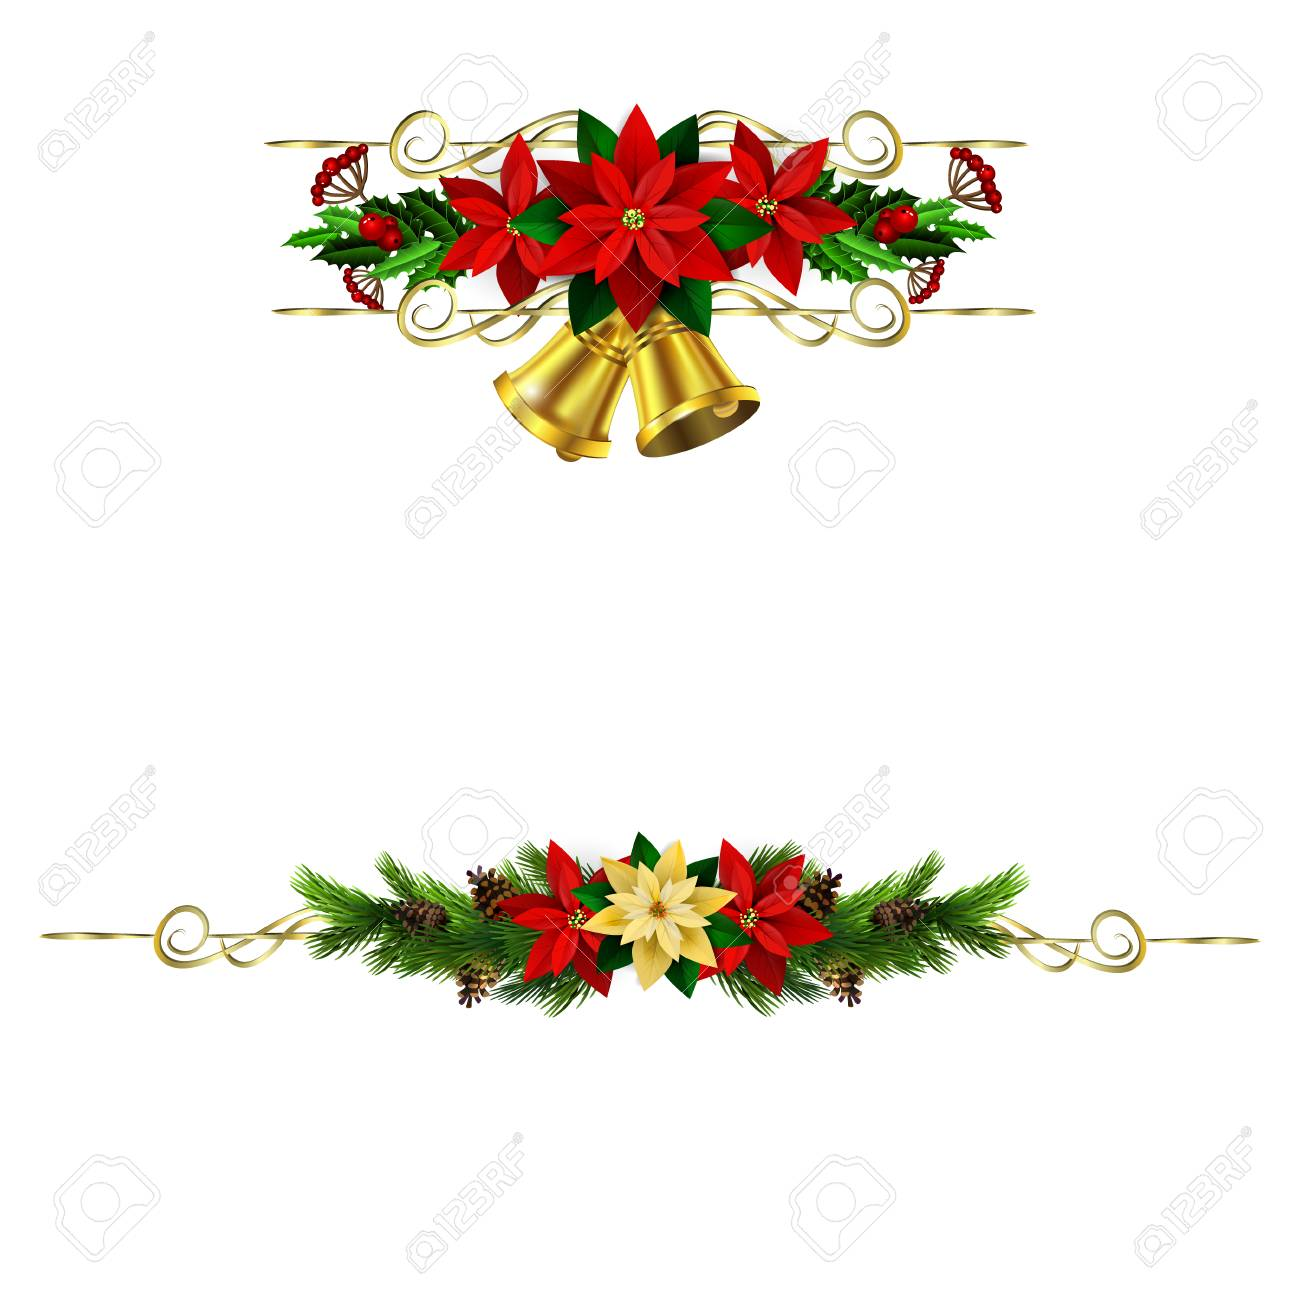 Christmas Designs.Christmas Elements For Your Designs